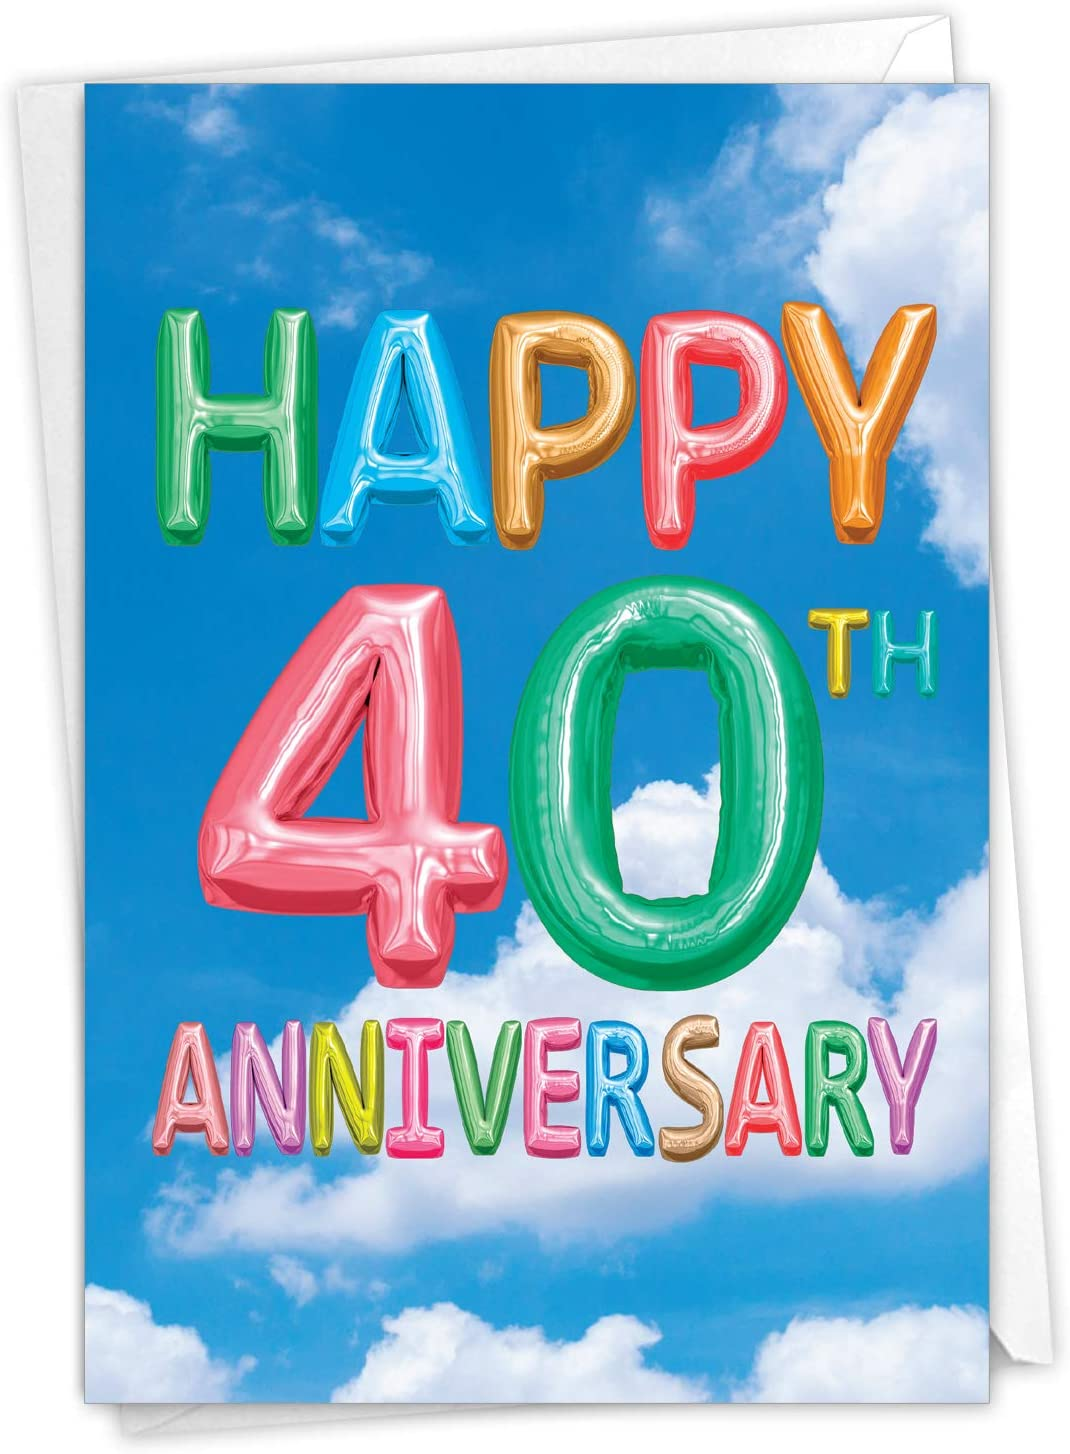 The Best Card Company - Happy 40th Anniversary Greeting Card - Congrats on 40 Years of Marriage, Celebration Notecard with Envelope (Not 3D or Raised) - Inflated Messages 40 C5651FMAG